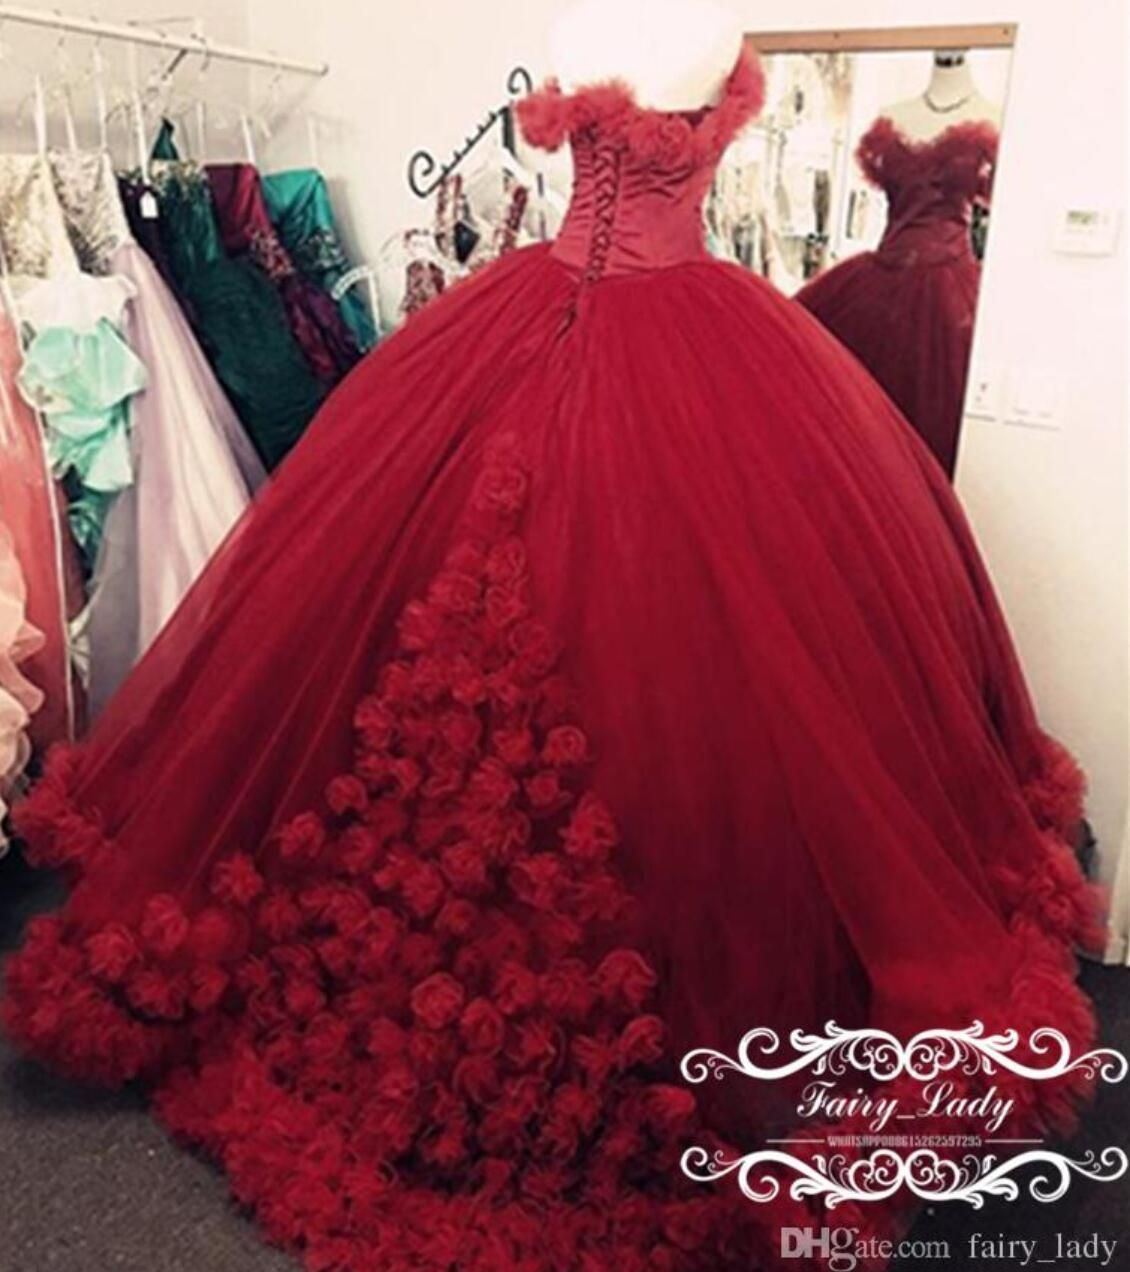 e9f1076905 Luxury Hand Made Flowers Red Wedding Dresses 2018 Puffy Ball Gown Off  Shoulder Vestido De Noiva Masquerade Bridal Dress Gowns